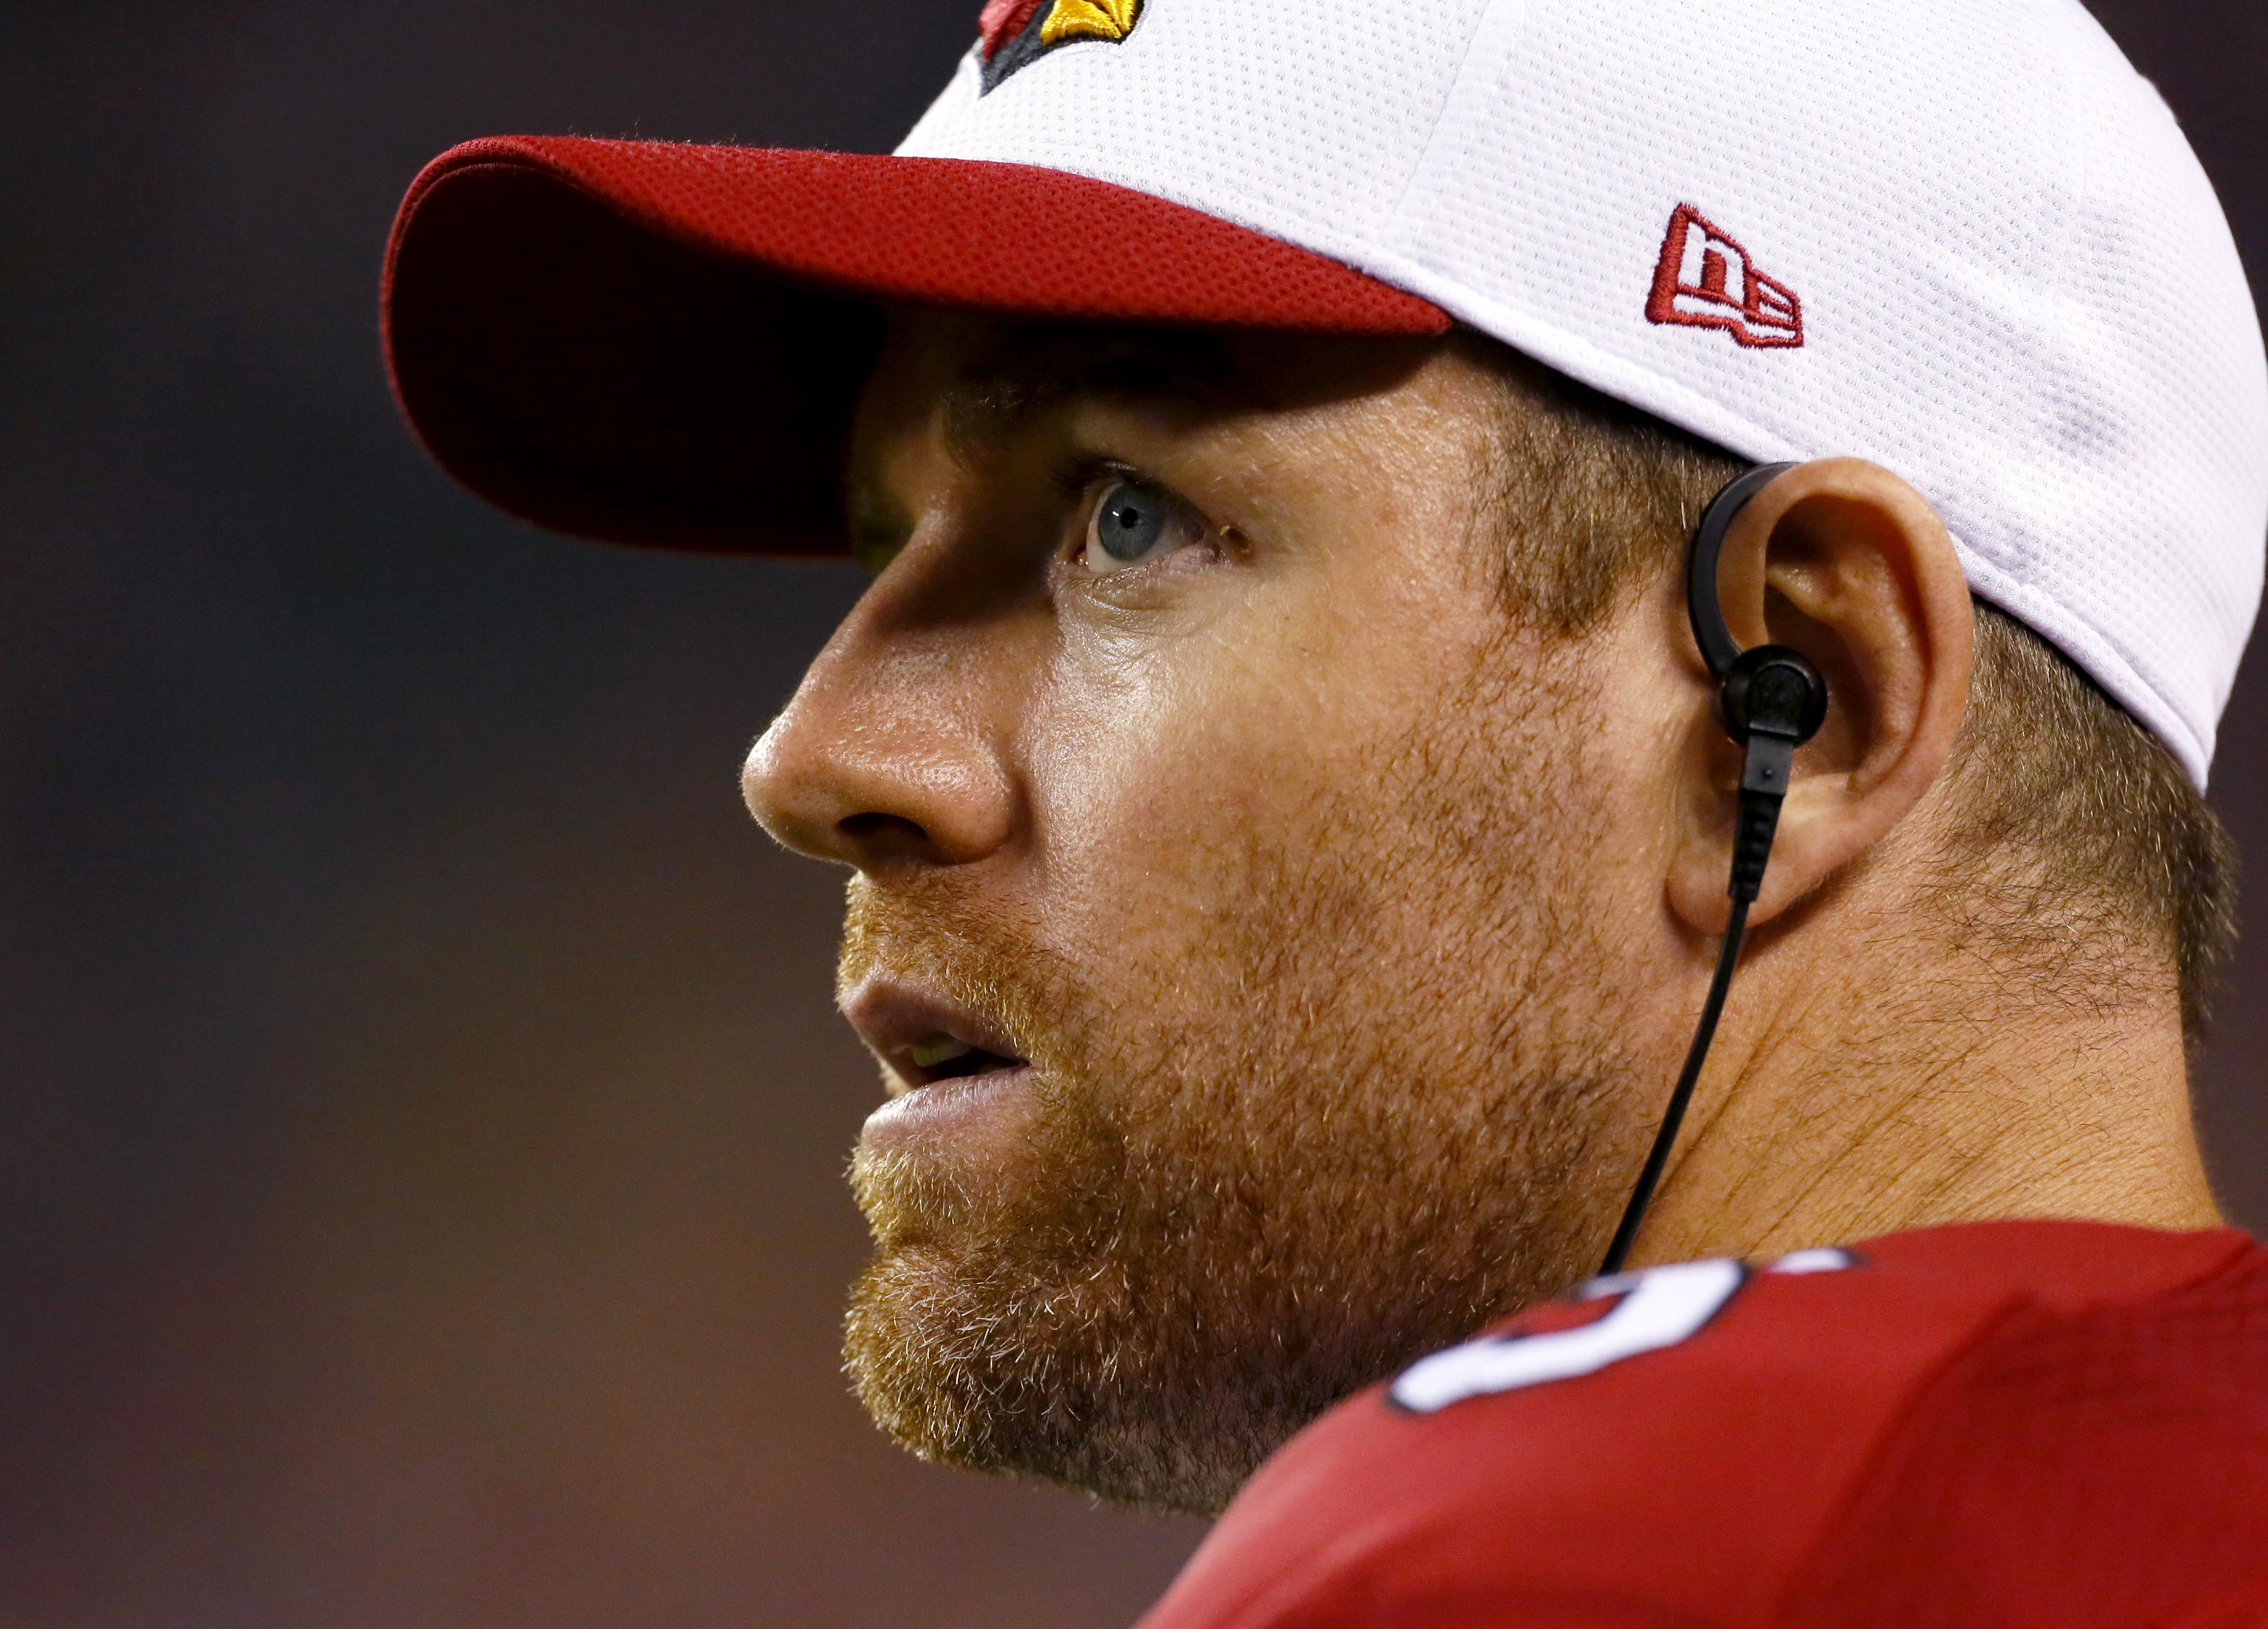 Arizona Cardinals quarterback Carson Palmer stands on the sidelines during the second half of an NFL preseason football game against the Denver Broncos, Thursday, Sept. 3, 2015, in Denver. The Cardinals won 22-20. (AP Photo/Joe Mahoney)